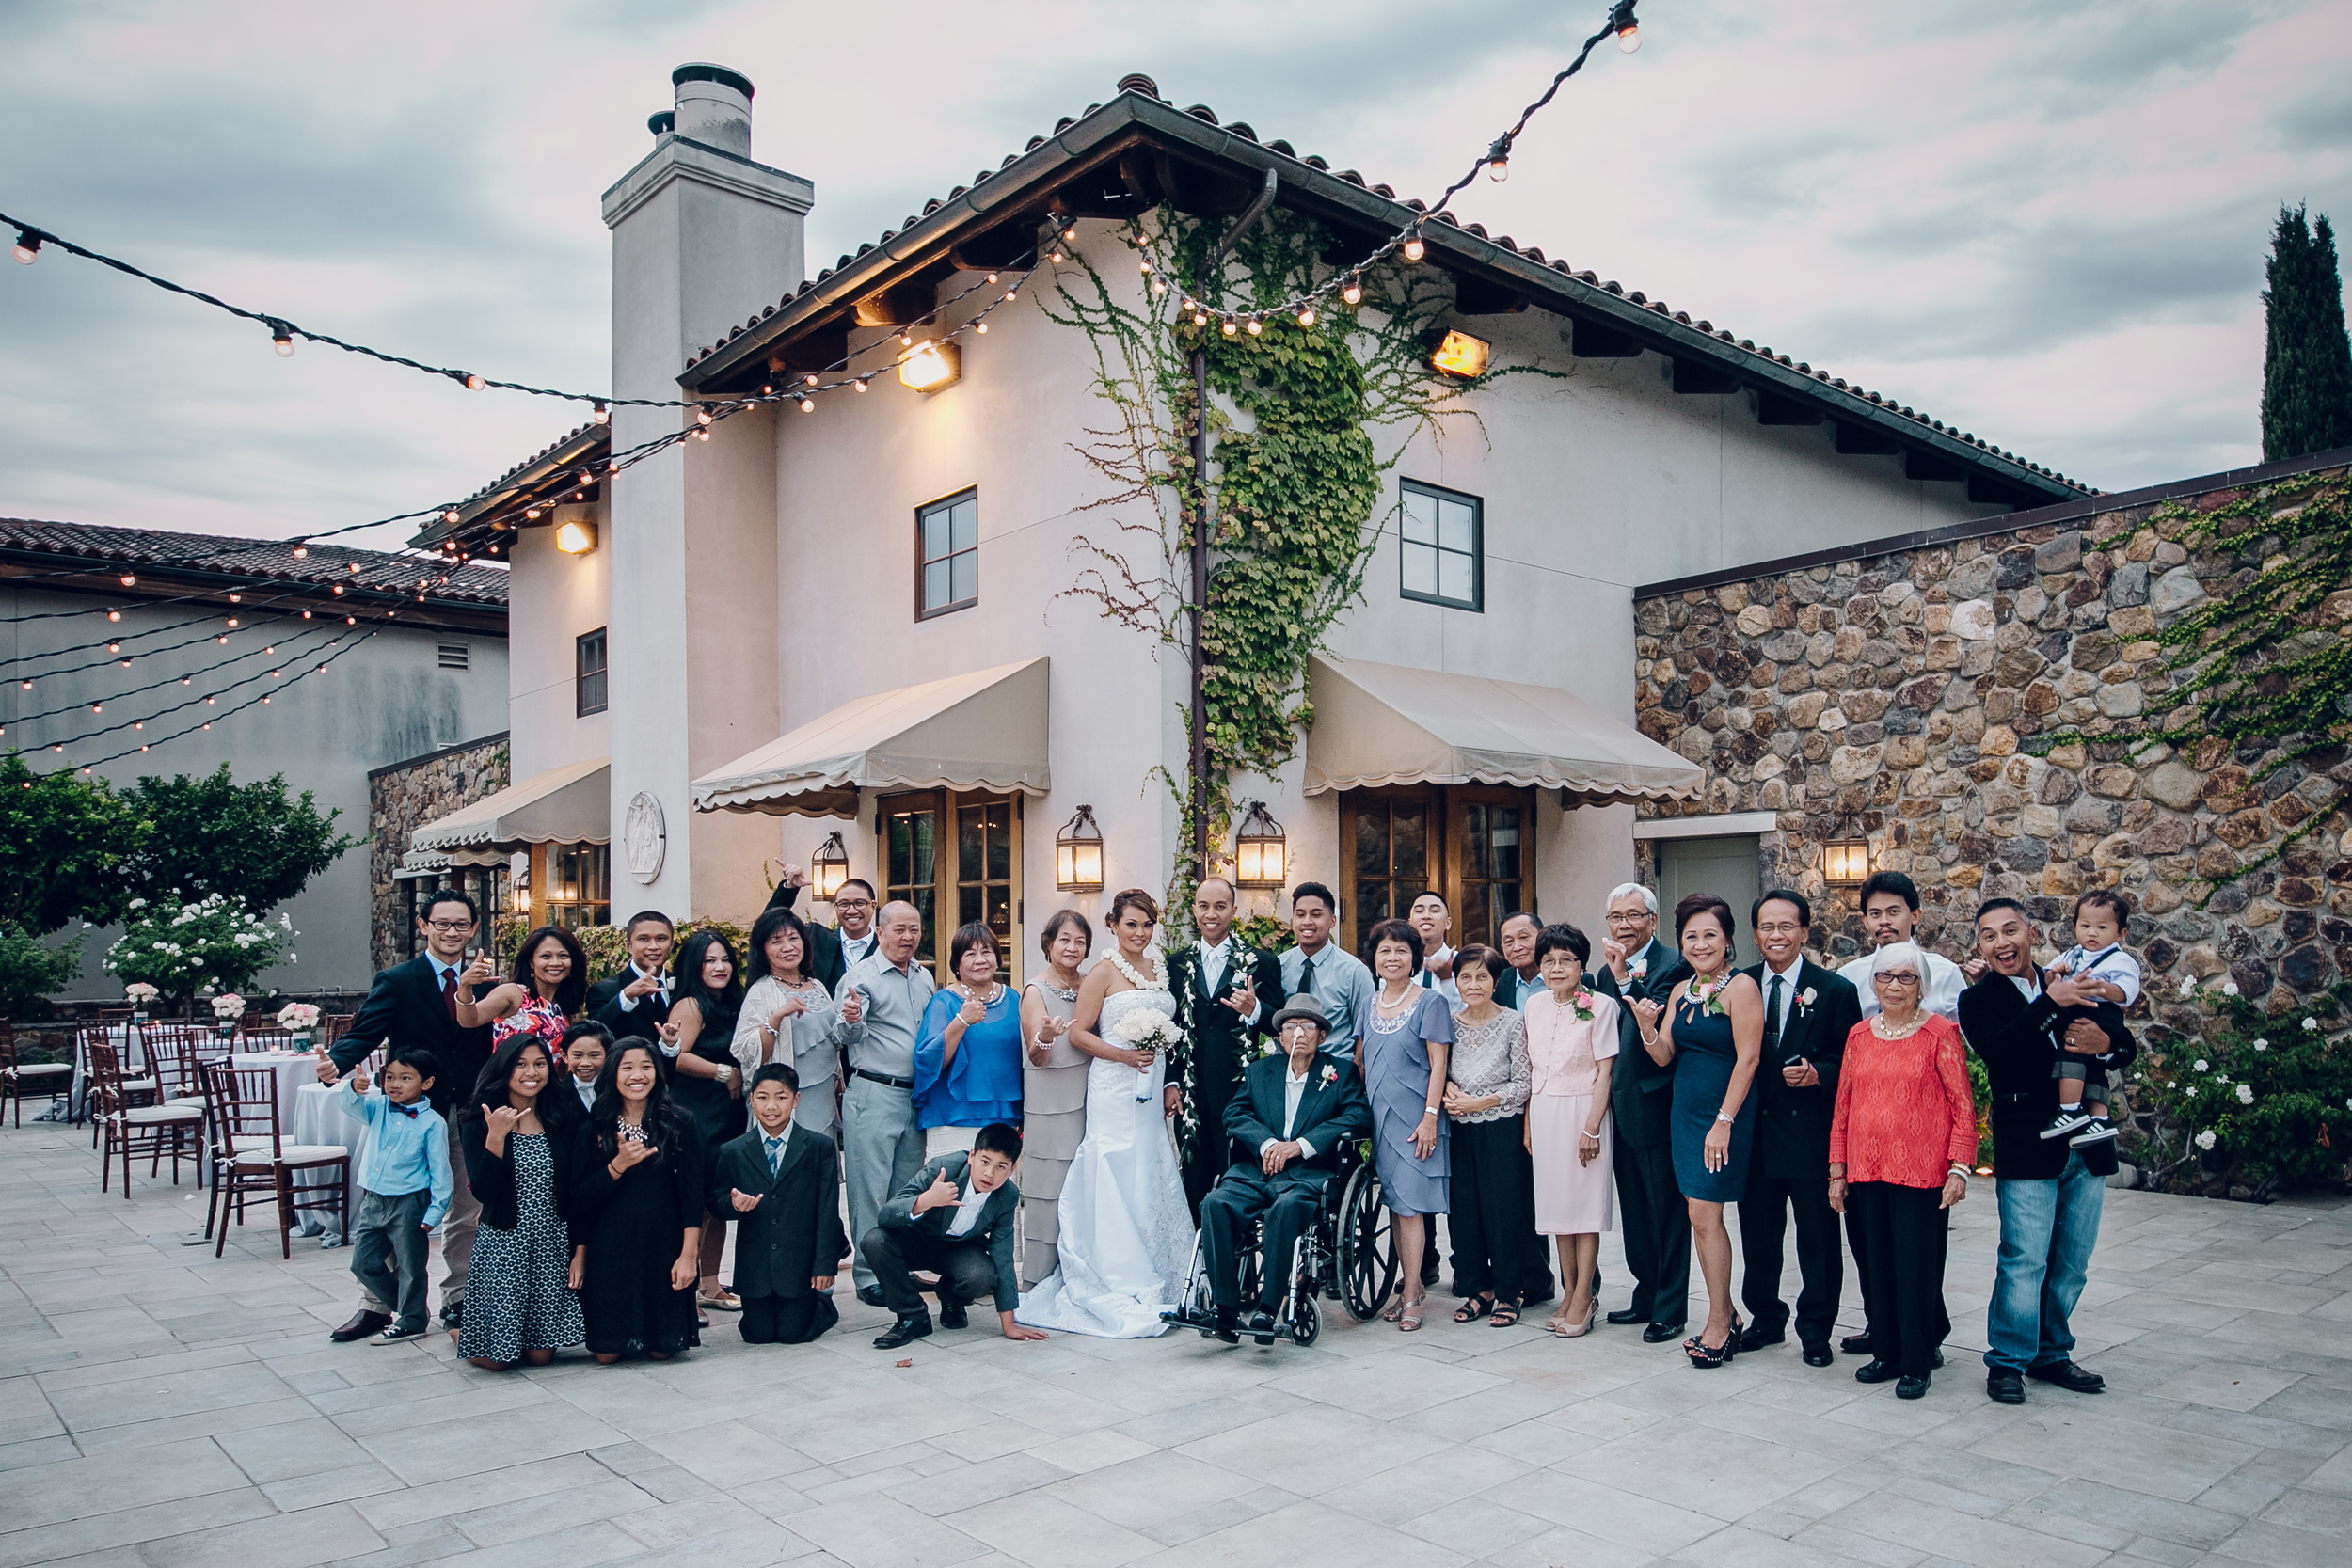 Shiela + Lester's Wedding 9-30-15 984.jpg